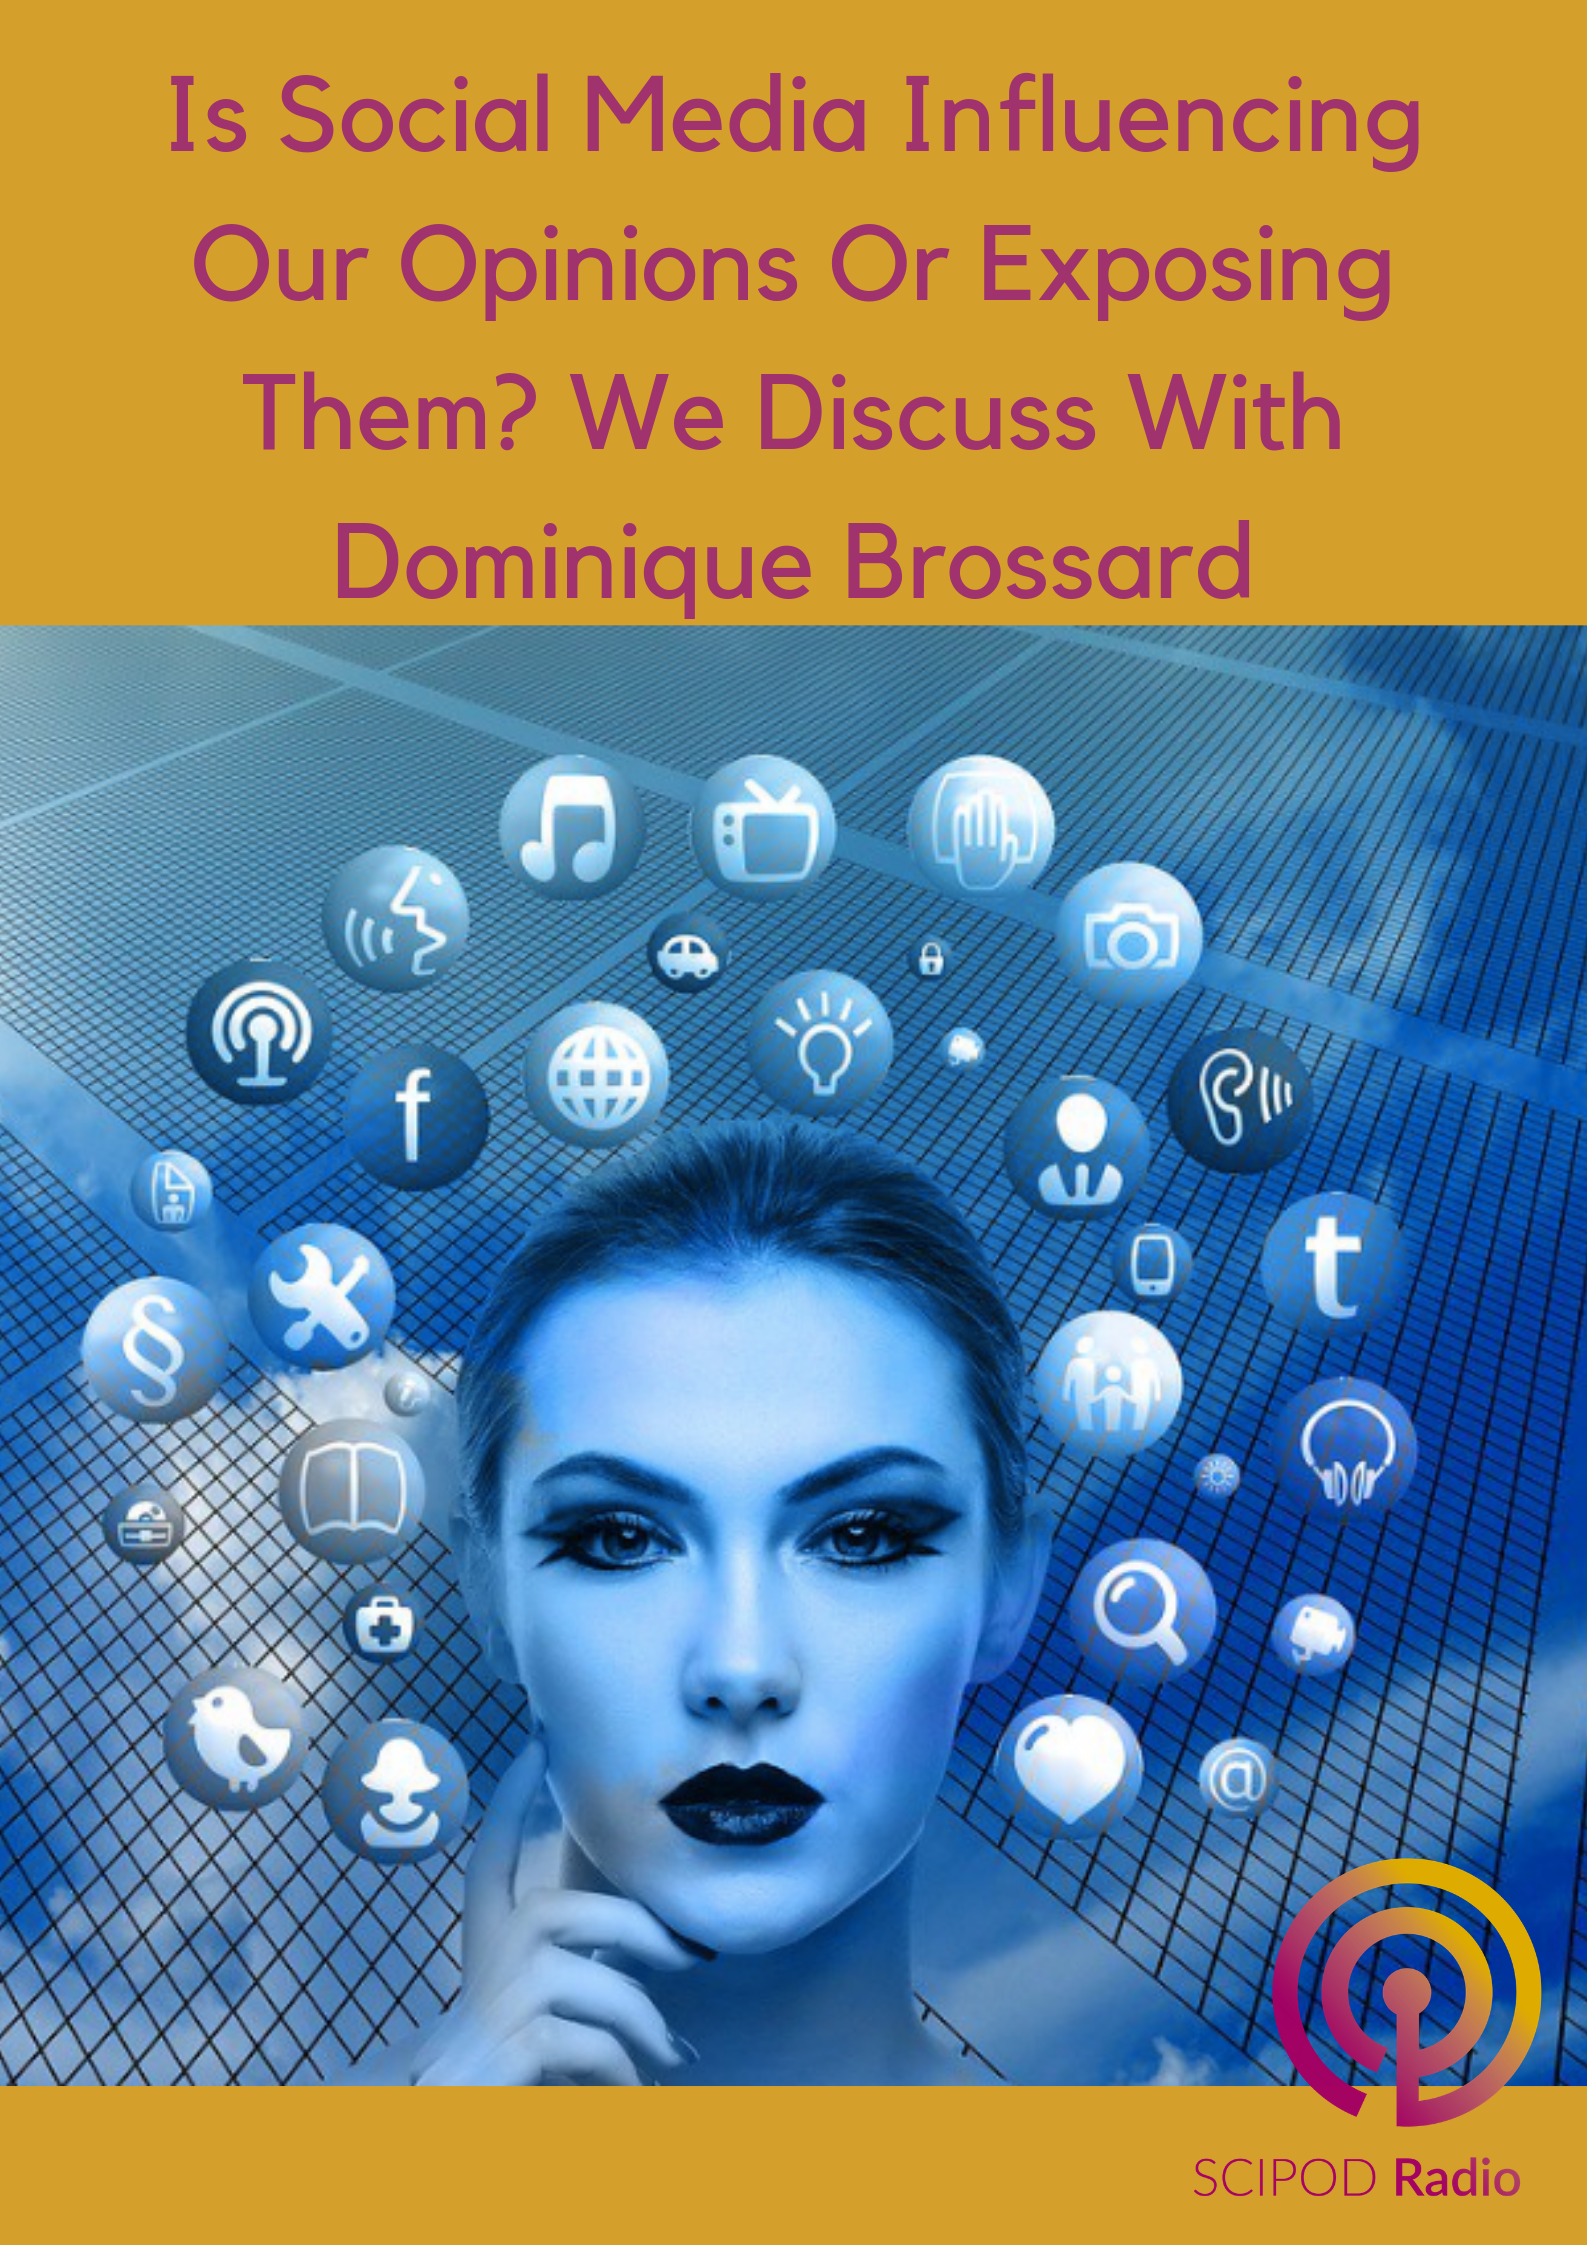 Is Social Media Influencing Our Opinions Or Exposing Them? We Discuss With Dominique Brossard